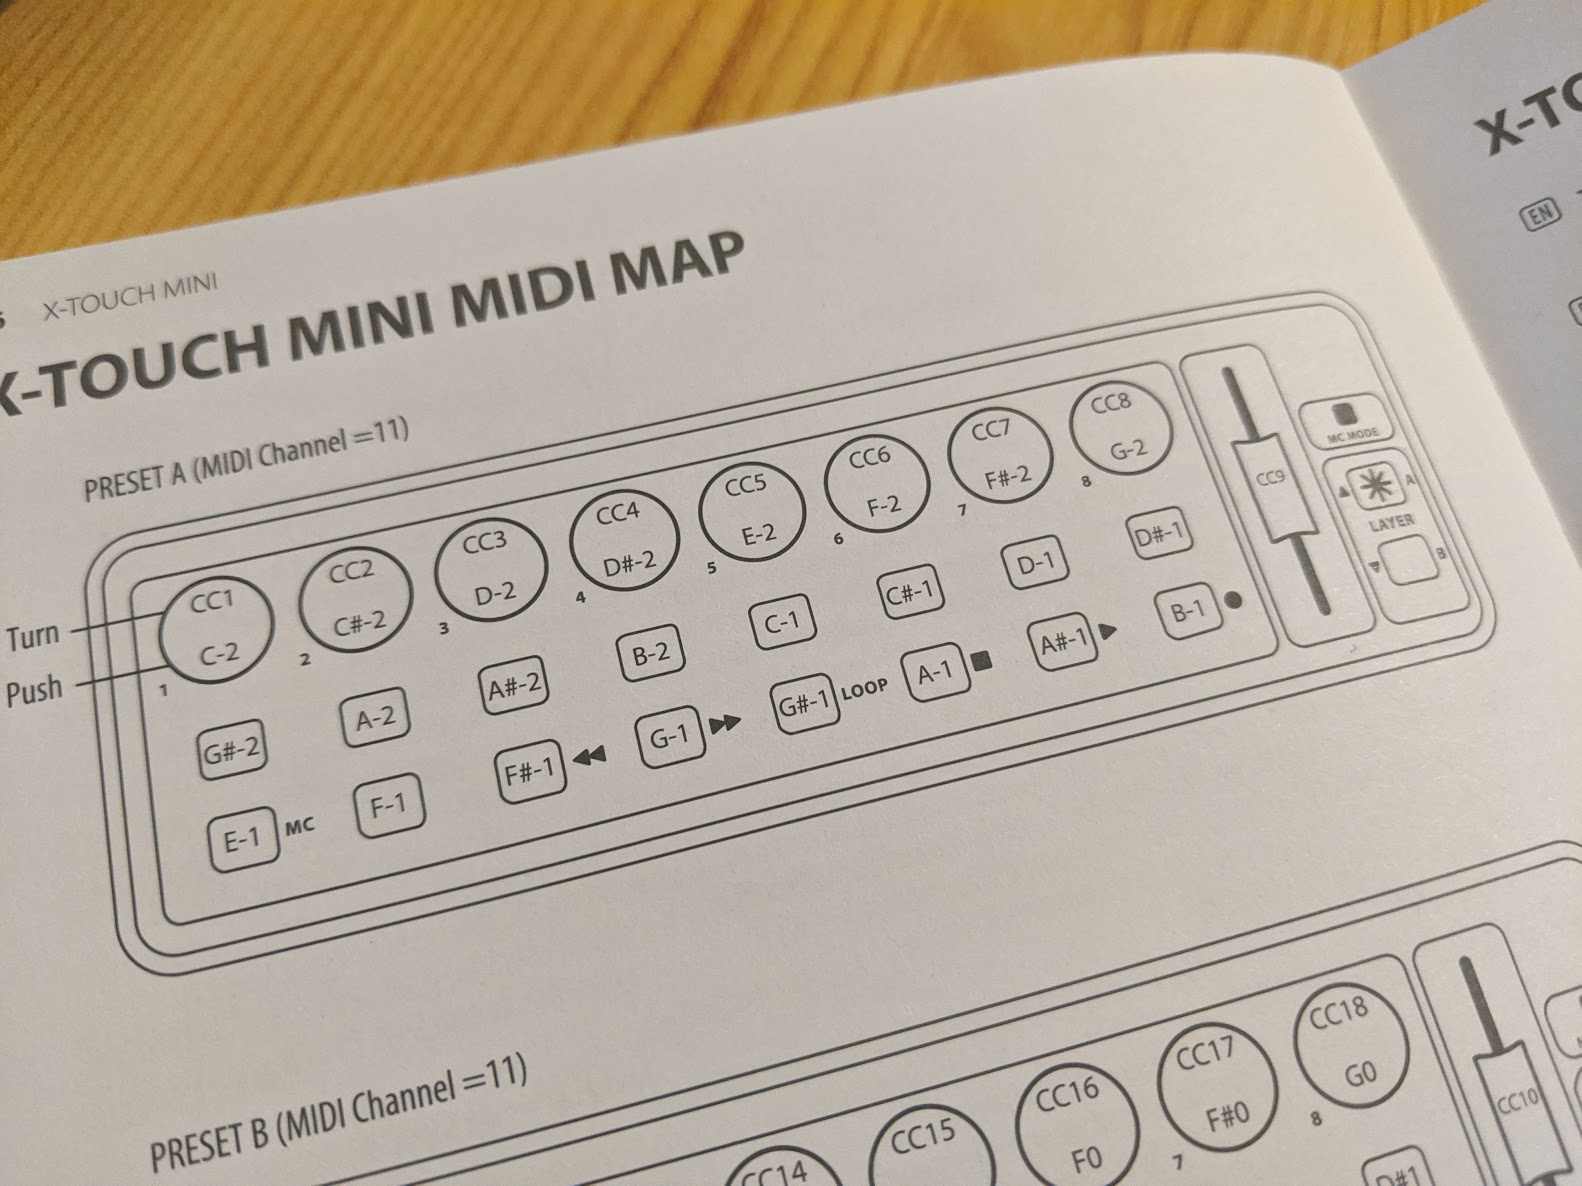 Manual showing MIDI mapping of device